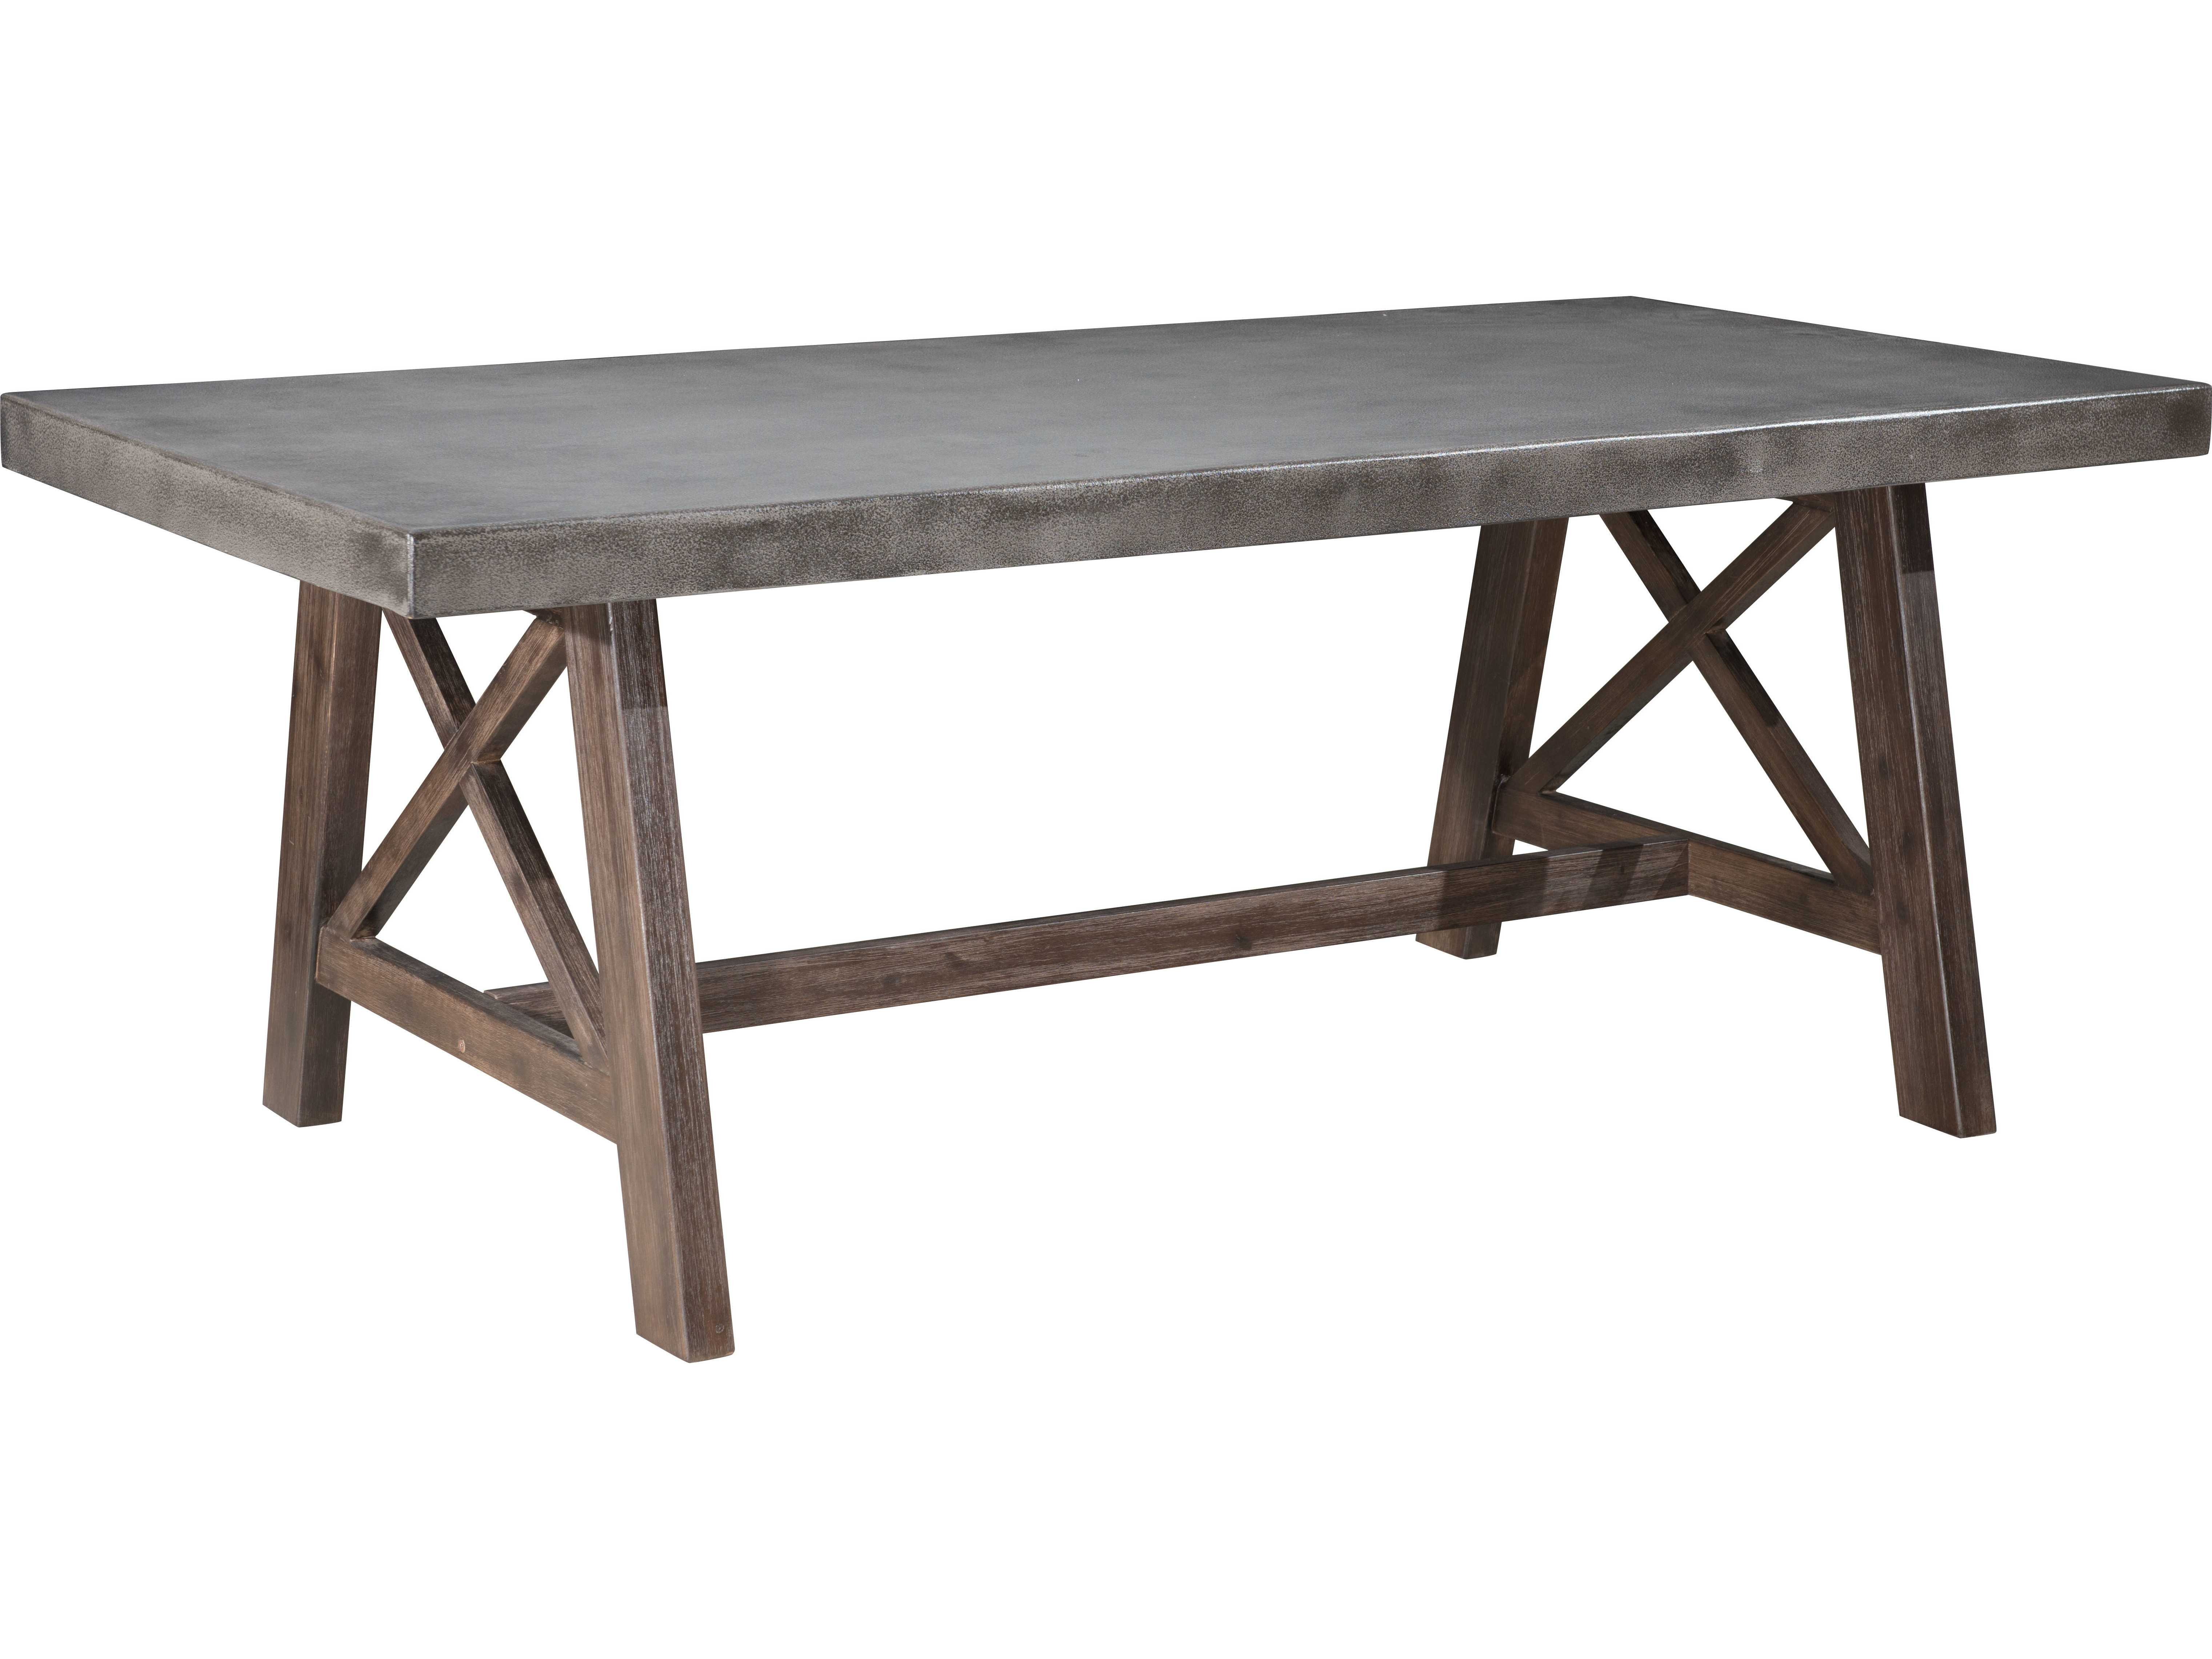 zuo outdoor ford wood x rectangular dining table in cement natural 703594. Black Bedroom Furniture Sets. Home Design Ideas